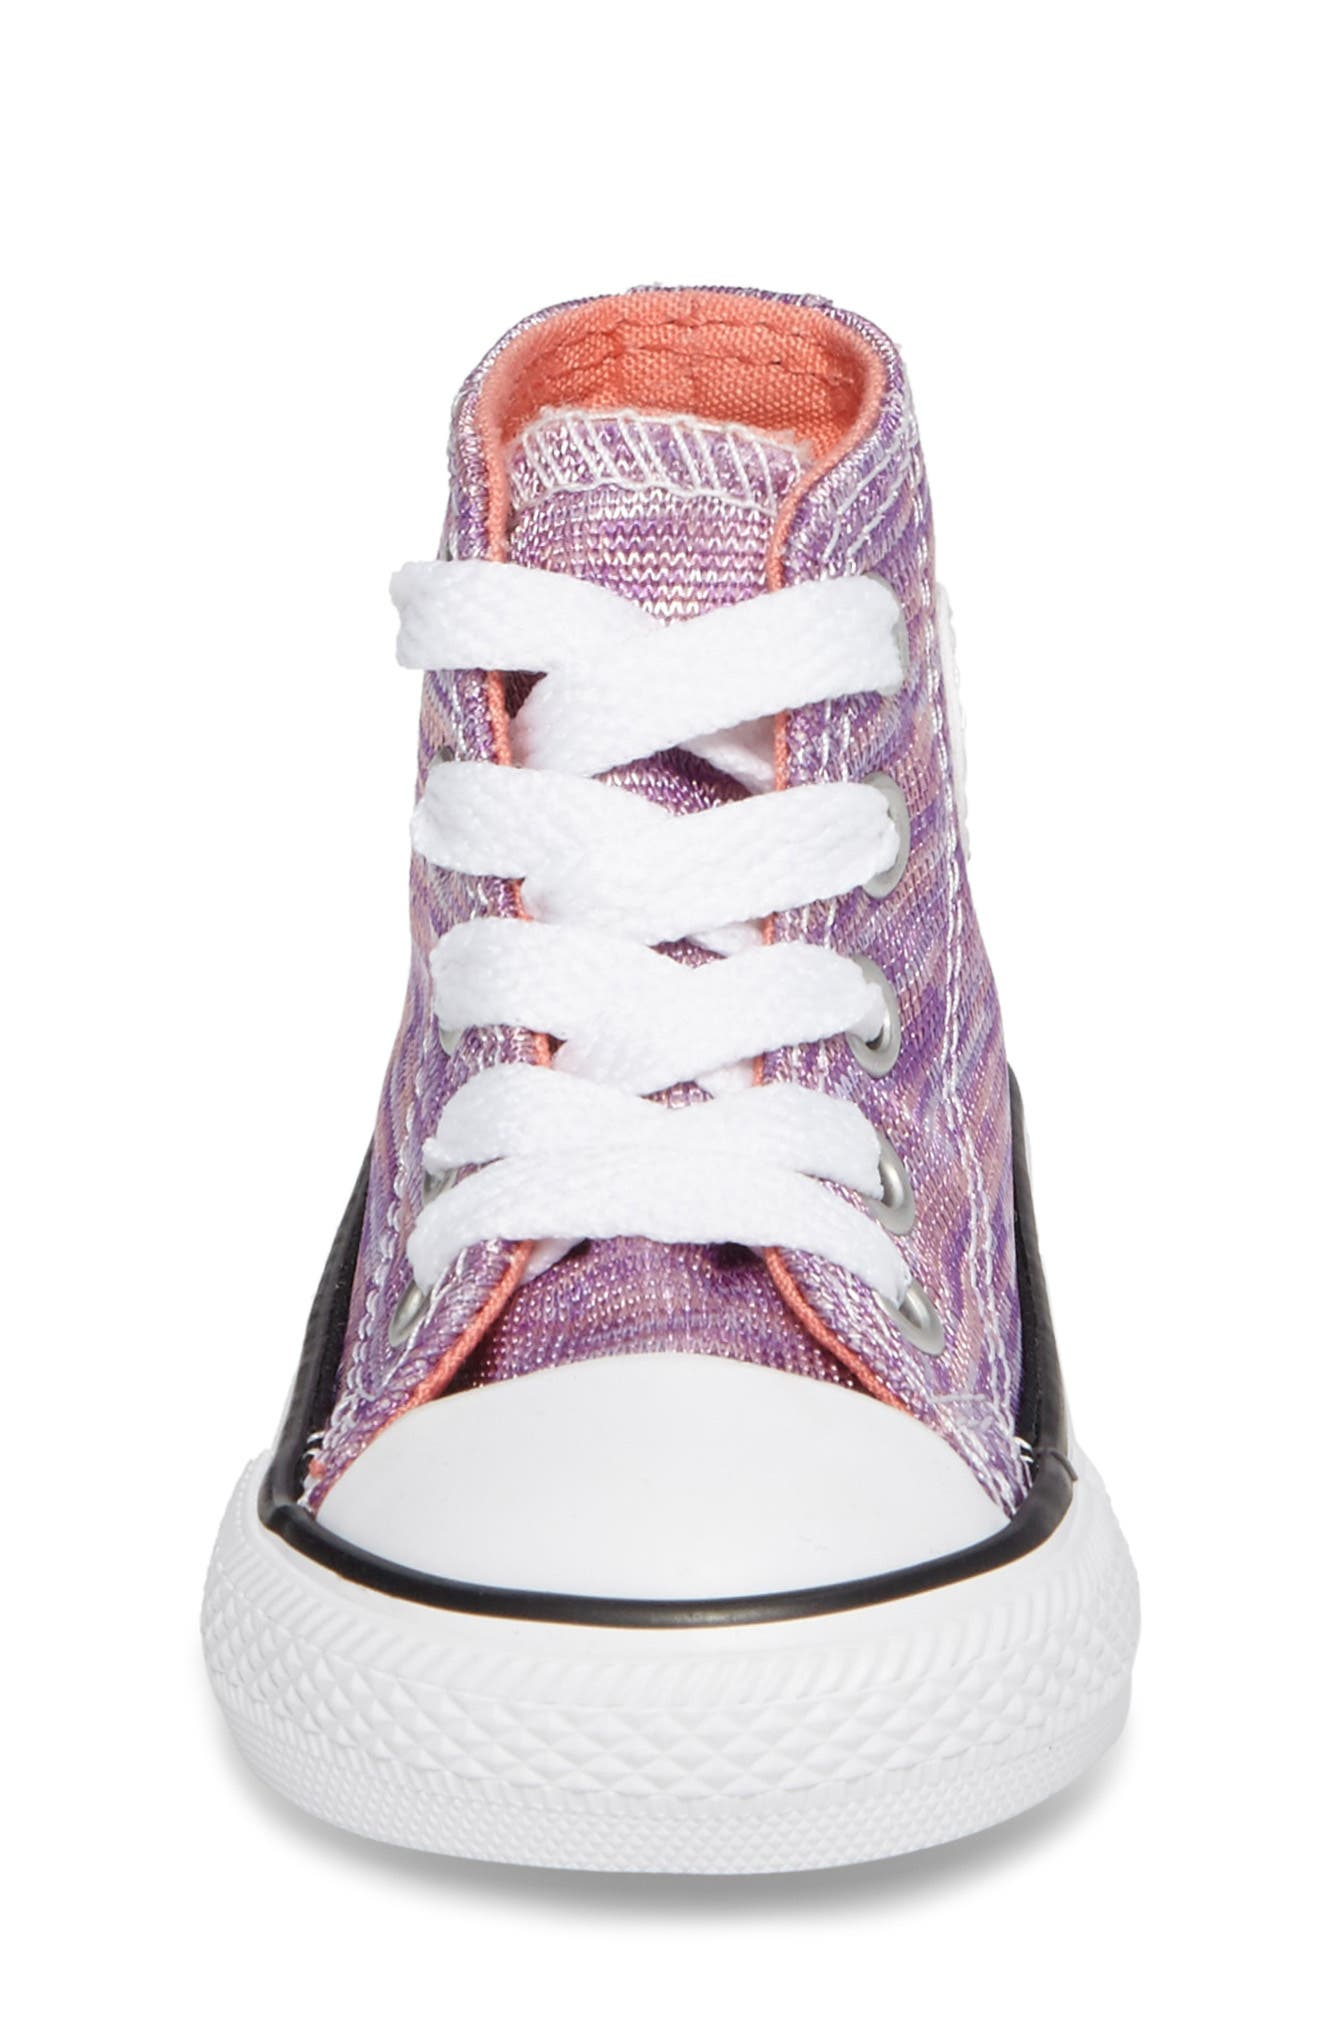 Alternate Image 4  - Converse Chuck Taylor® All Star® Knit High Top Sneaker (Baby, Walker, Toddler & Little Kid)